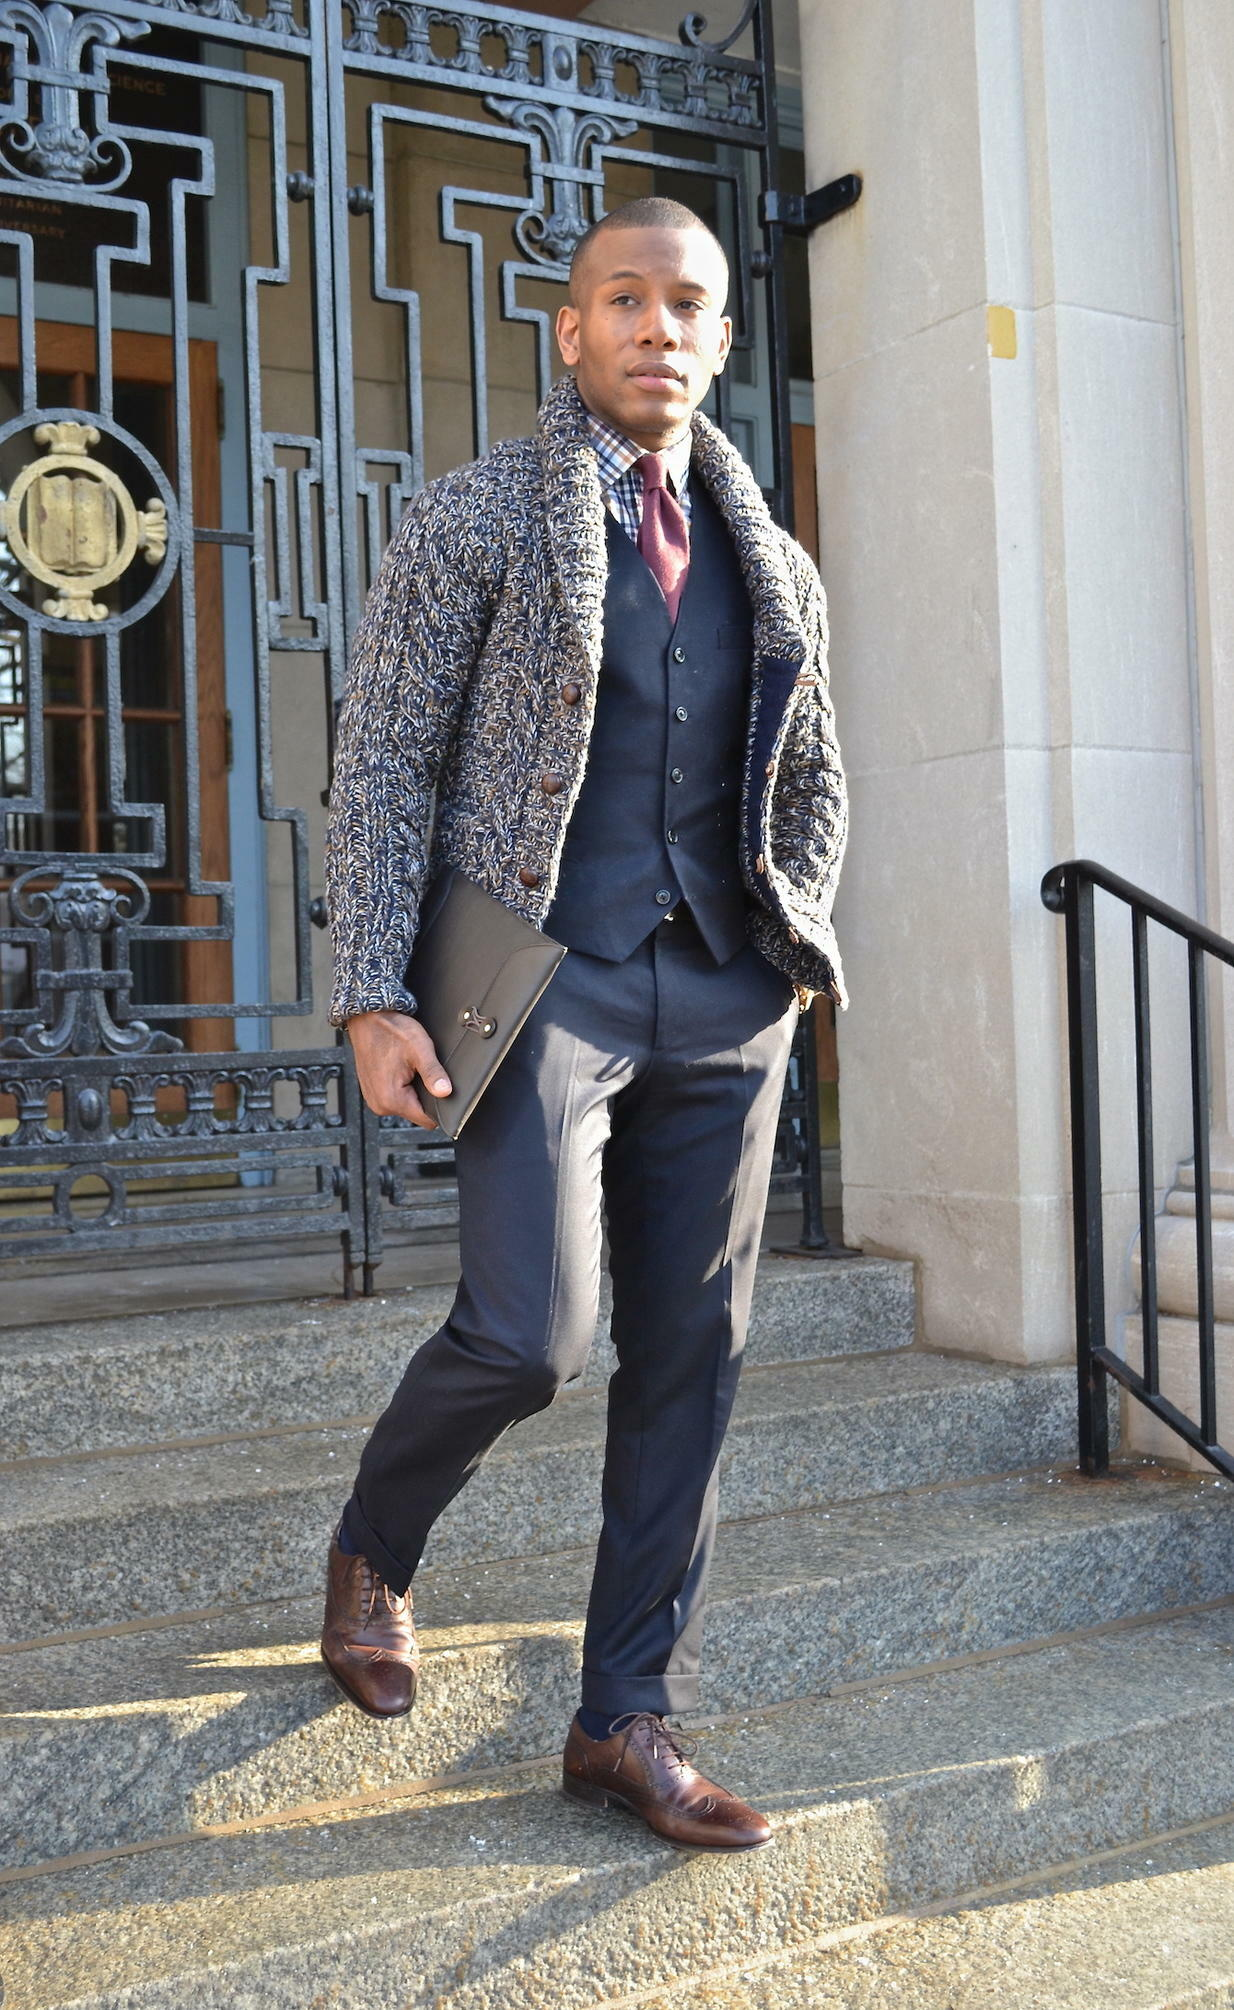 Shawl cardigan over suit